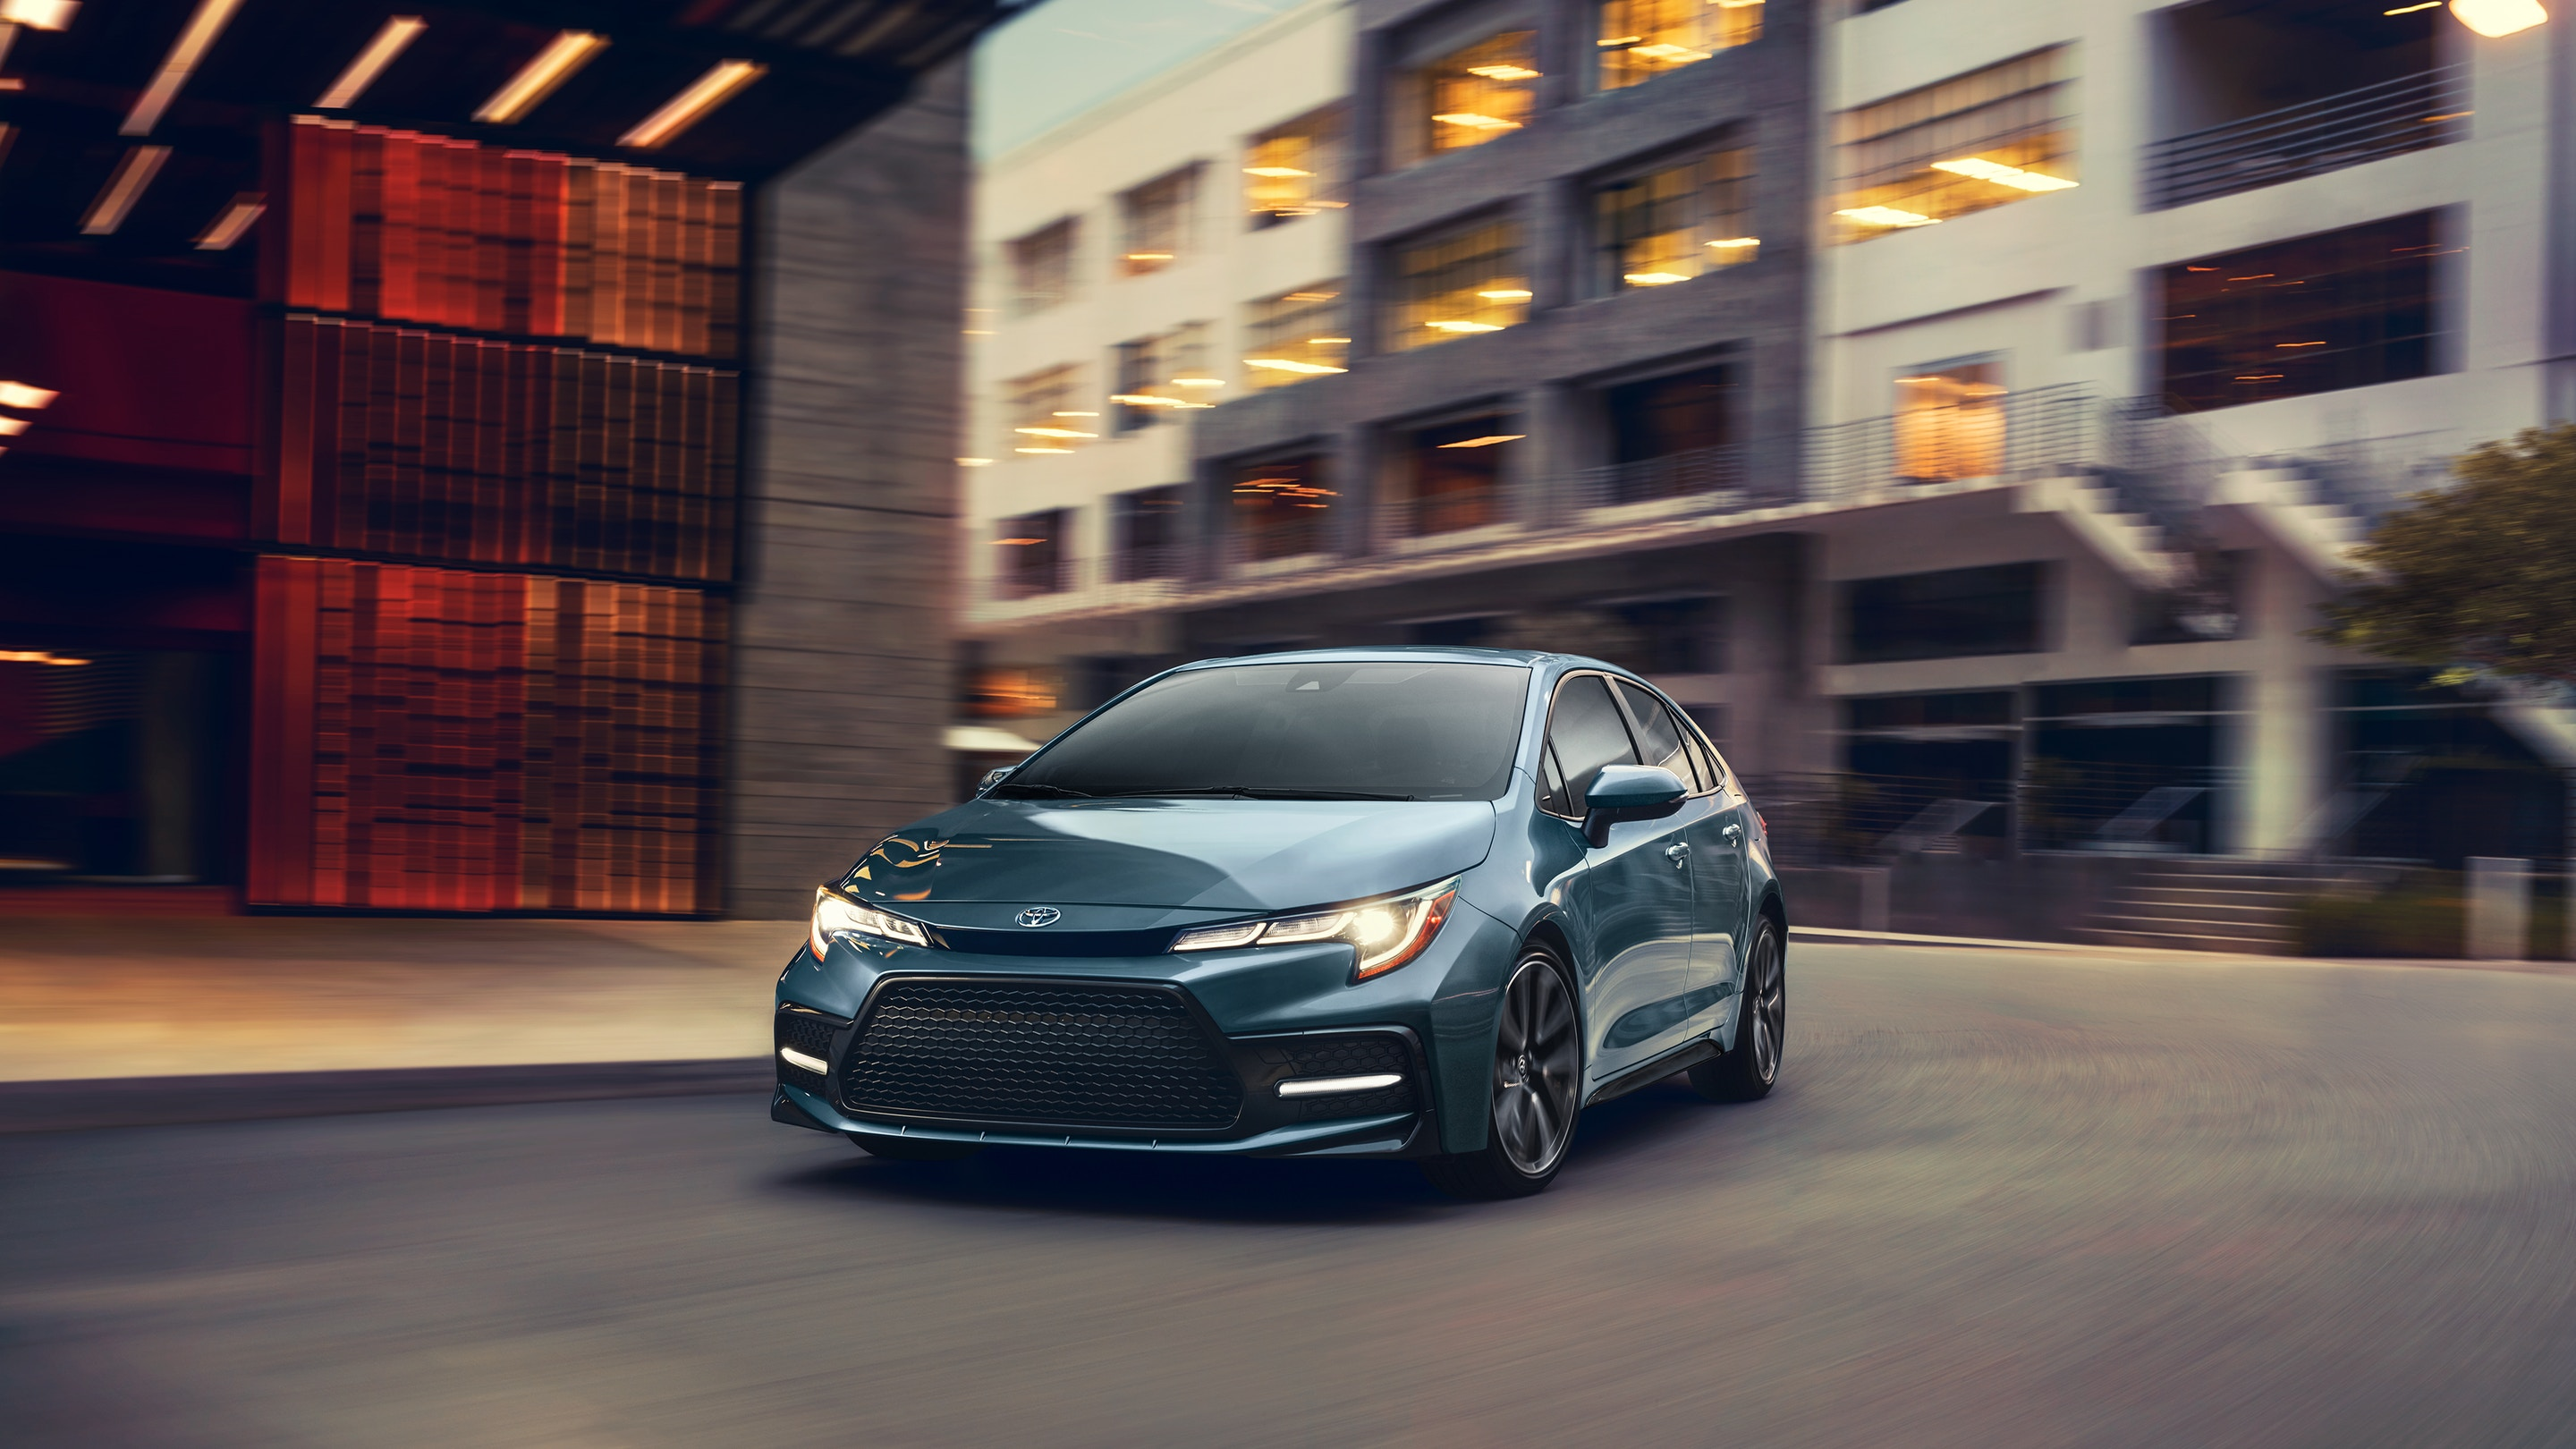 2020 Toyota Corolla vs 2019 Honda Civic near Lee's Summit, MO, 64086